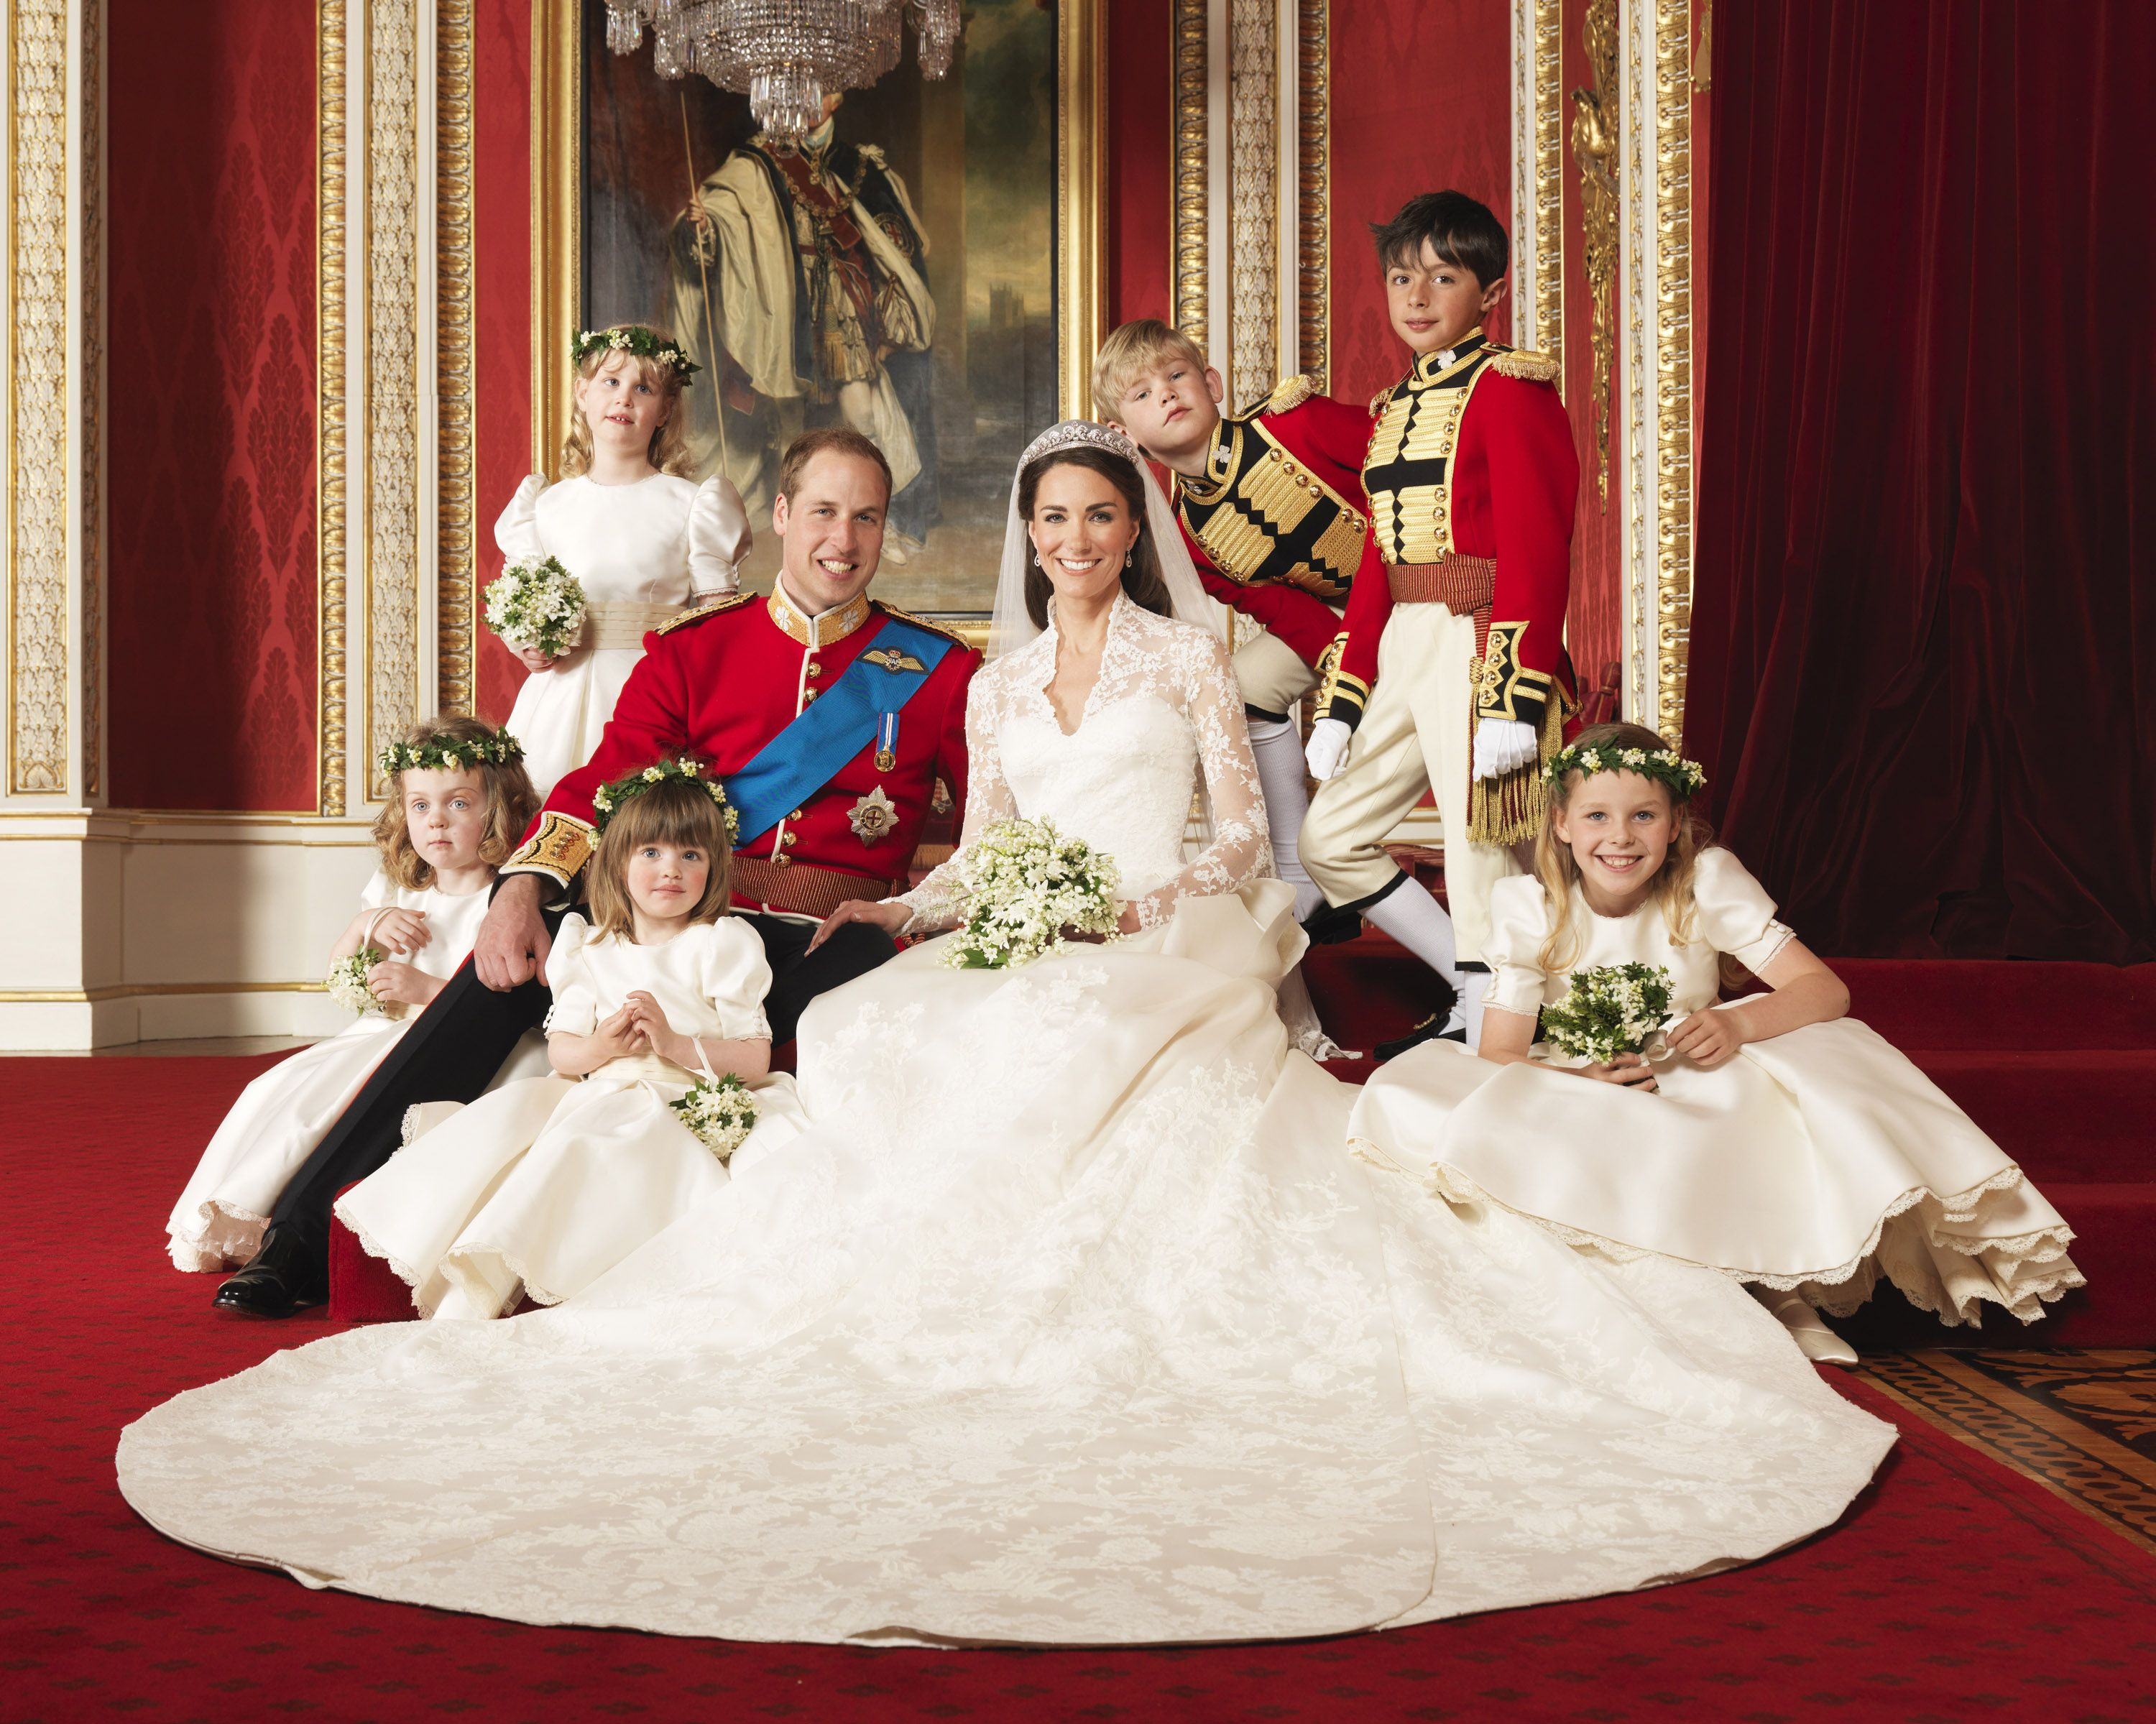 Prince William and Kate Middleton Almost Didn't Take Their Most Iconic Wedding Photograph